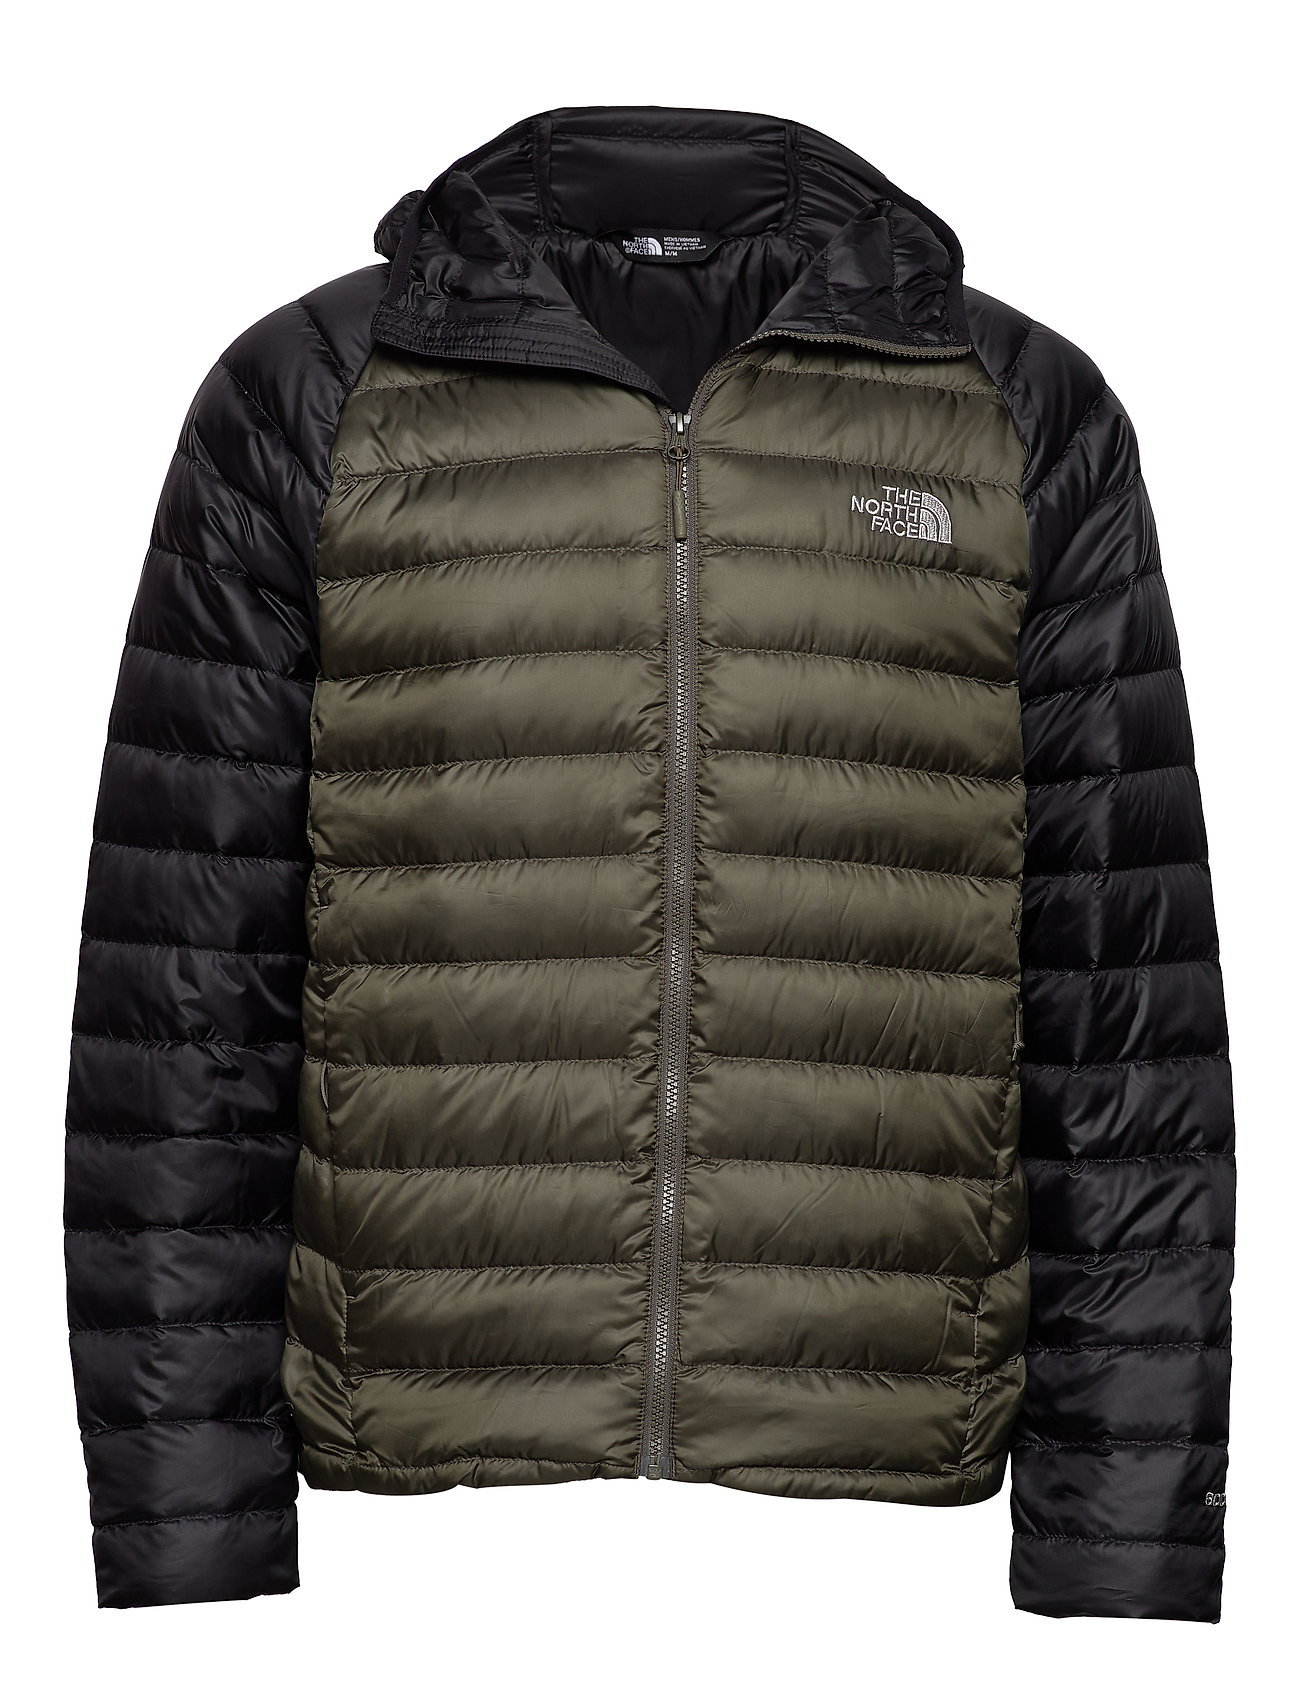 The North Face M TREVAIL HOODIE - NEW TAUPE GREEN/TNF BLACK